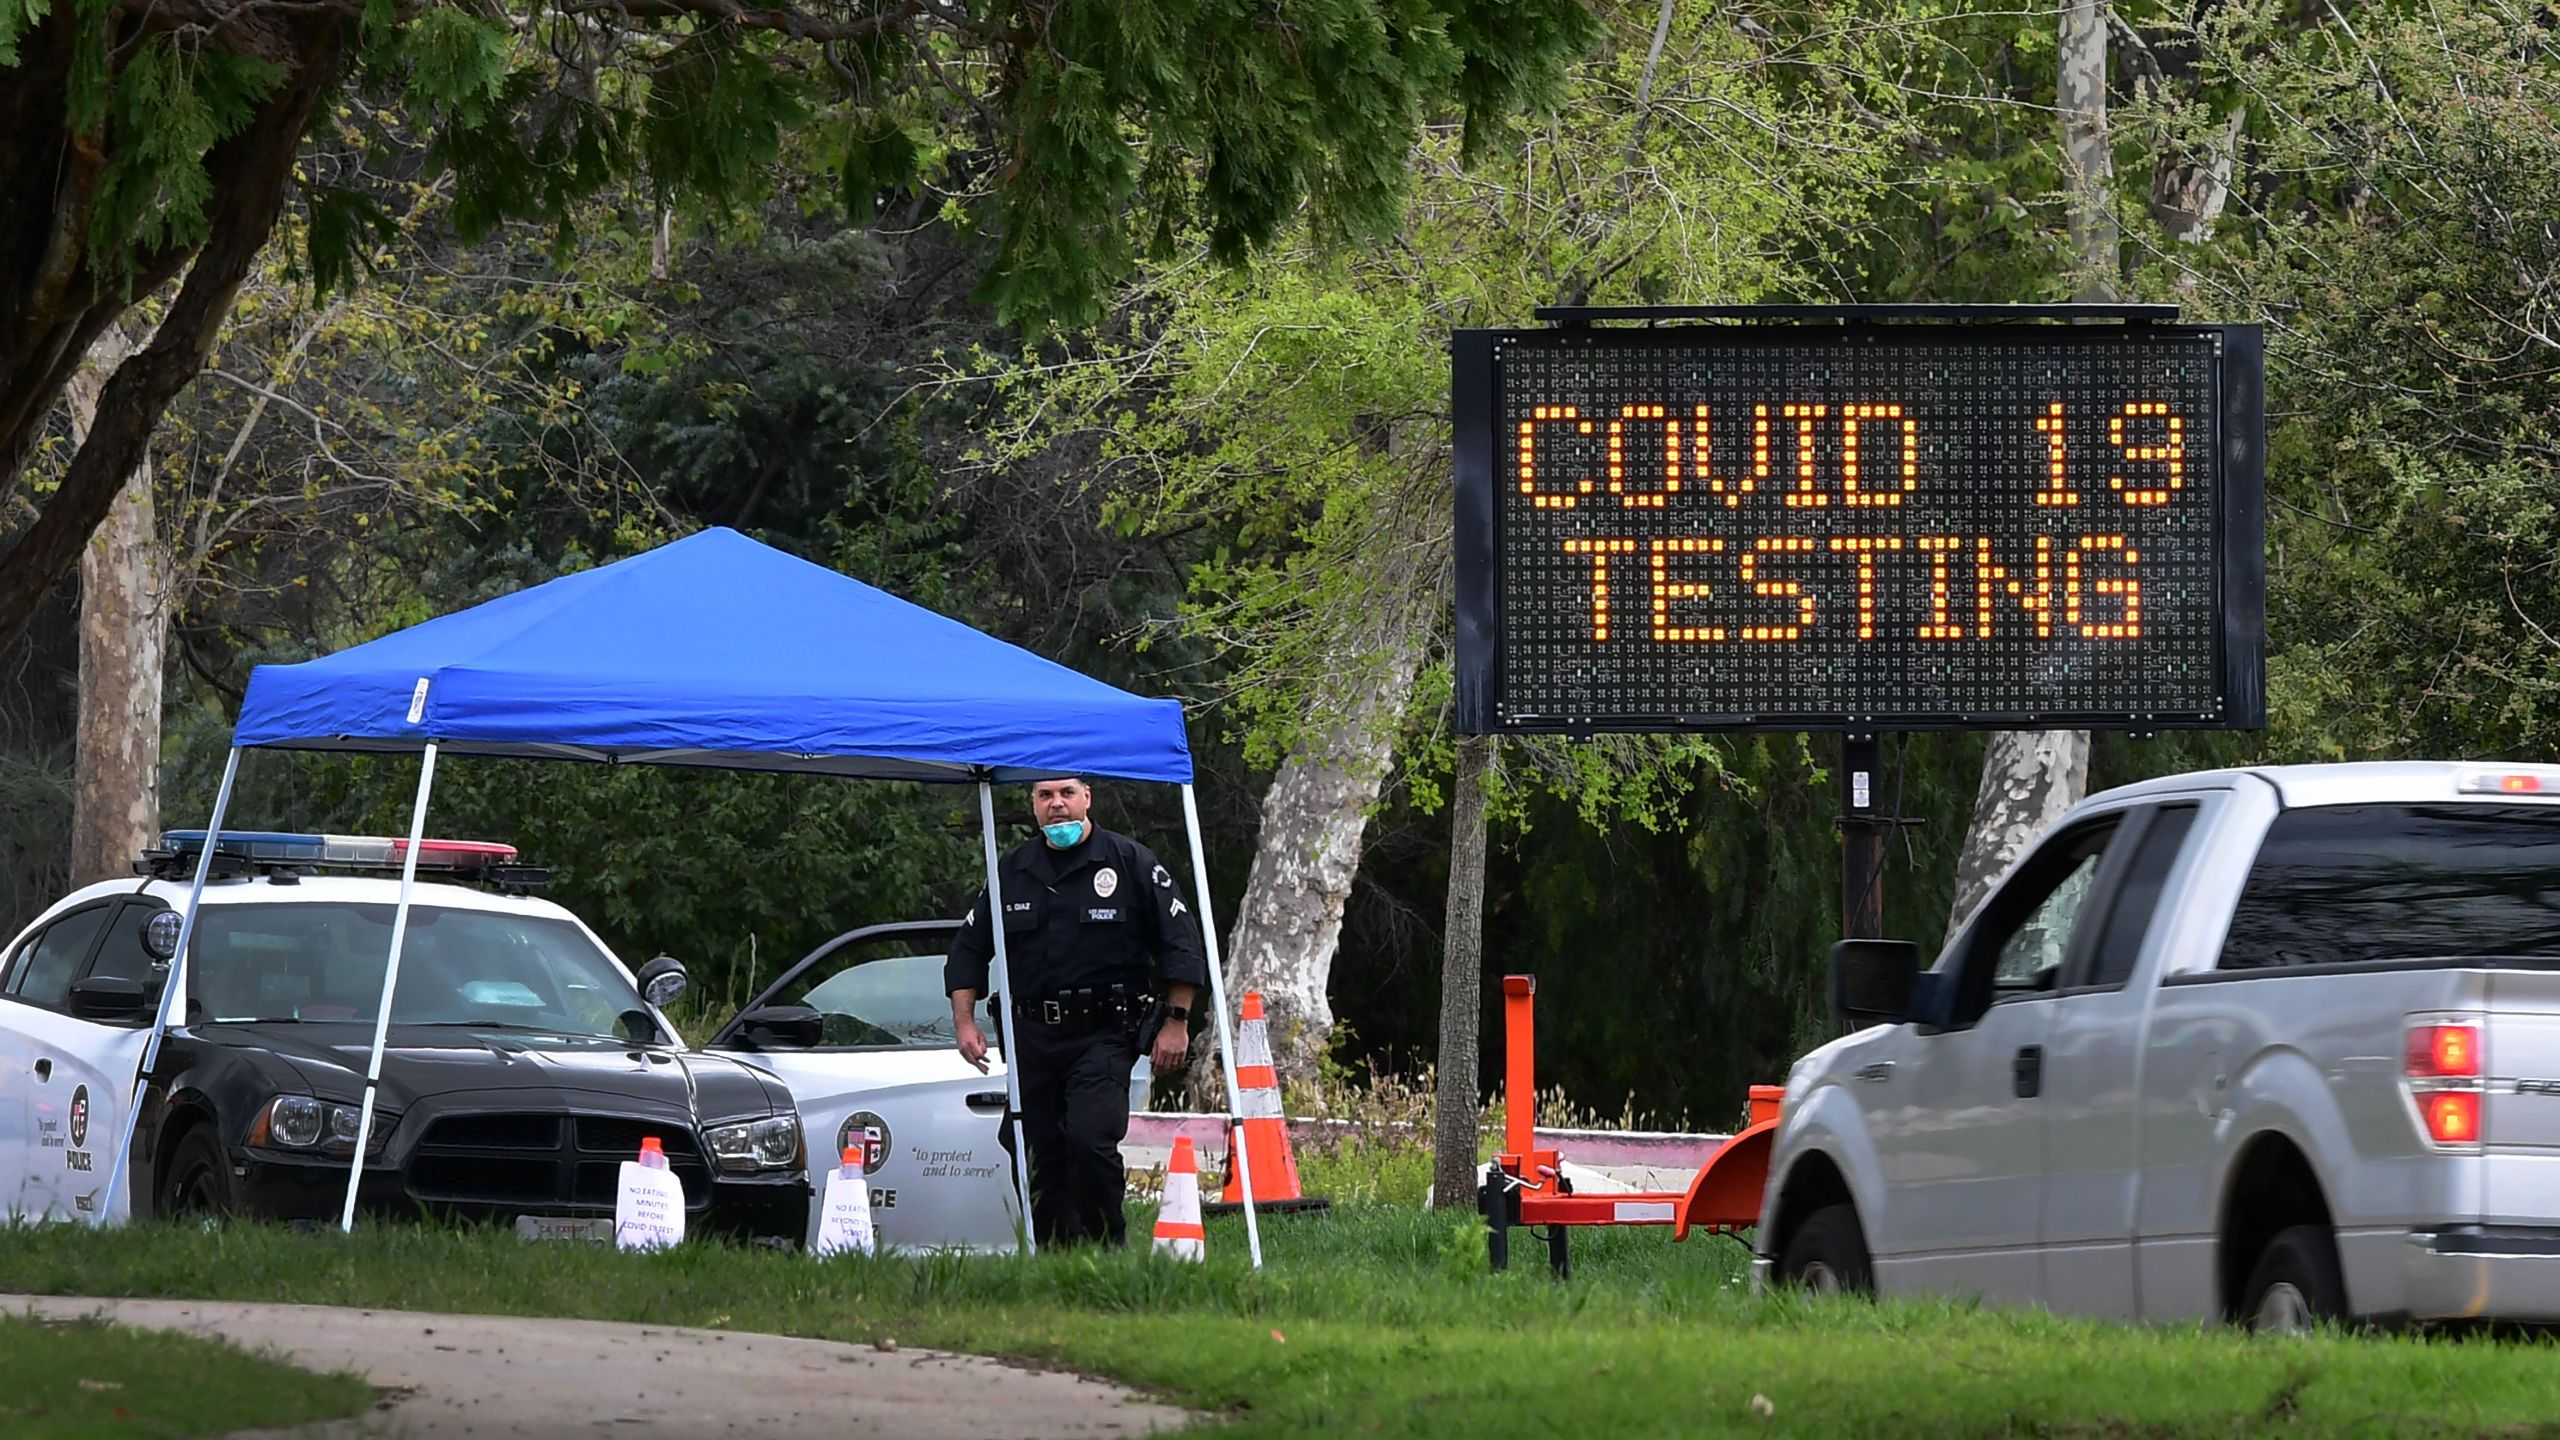 A police officer mans the entrance to a coronavirus (COVID-19) testing center in Hansen Dam Park on March 25, 2020 in Pacoima. (FREDERIC J. BROWN/AFP via Getty Images)